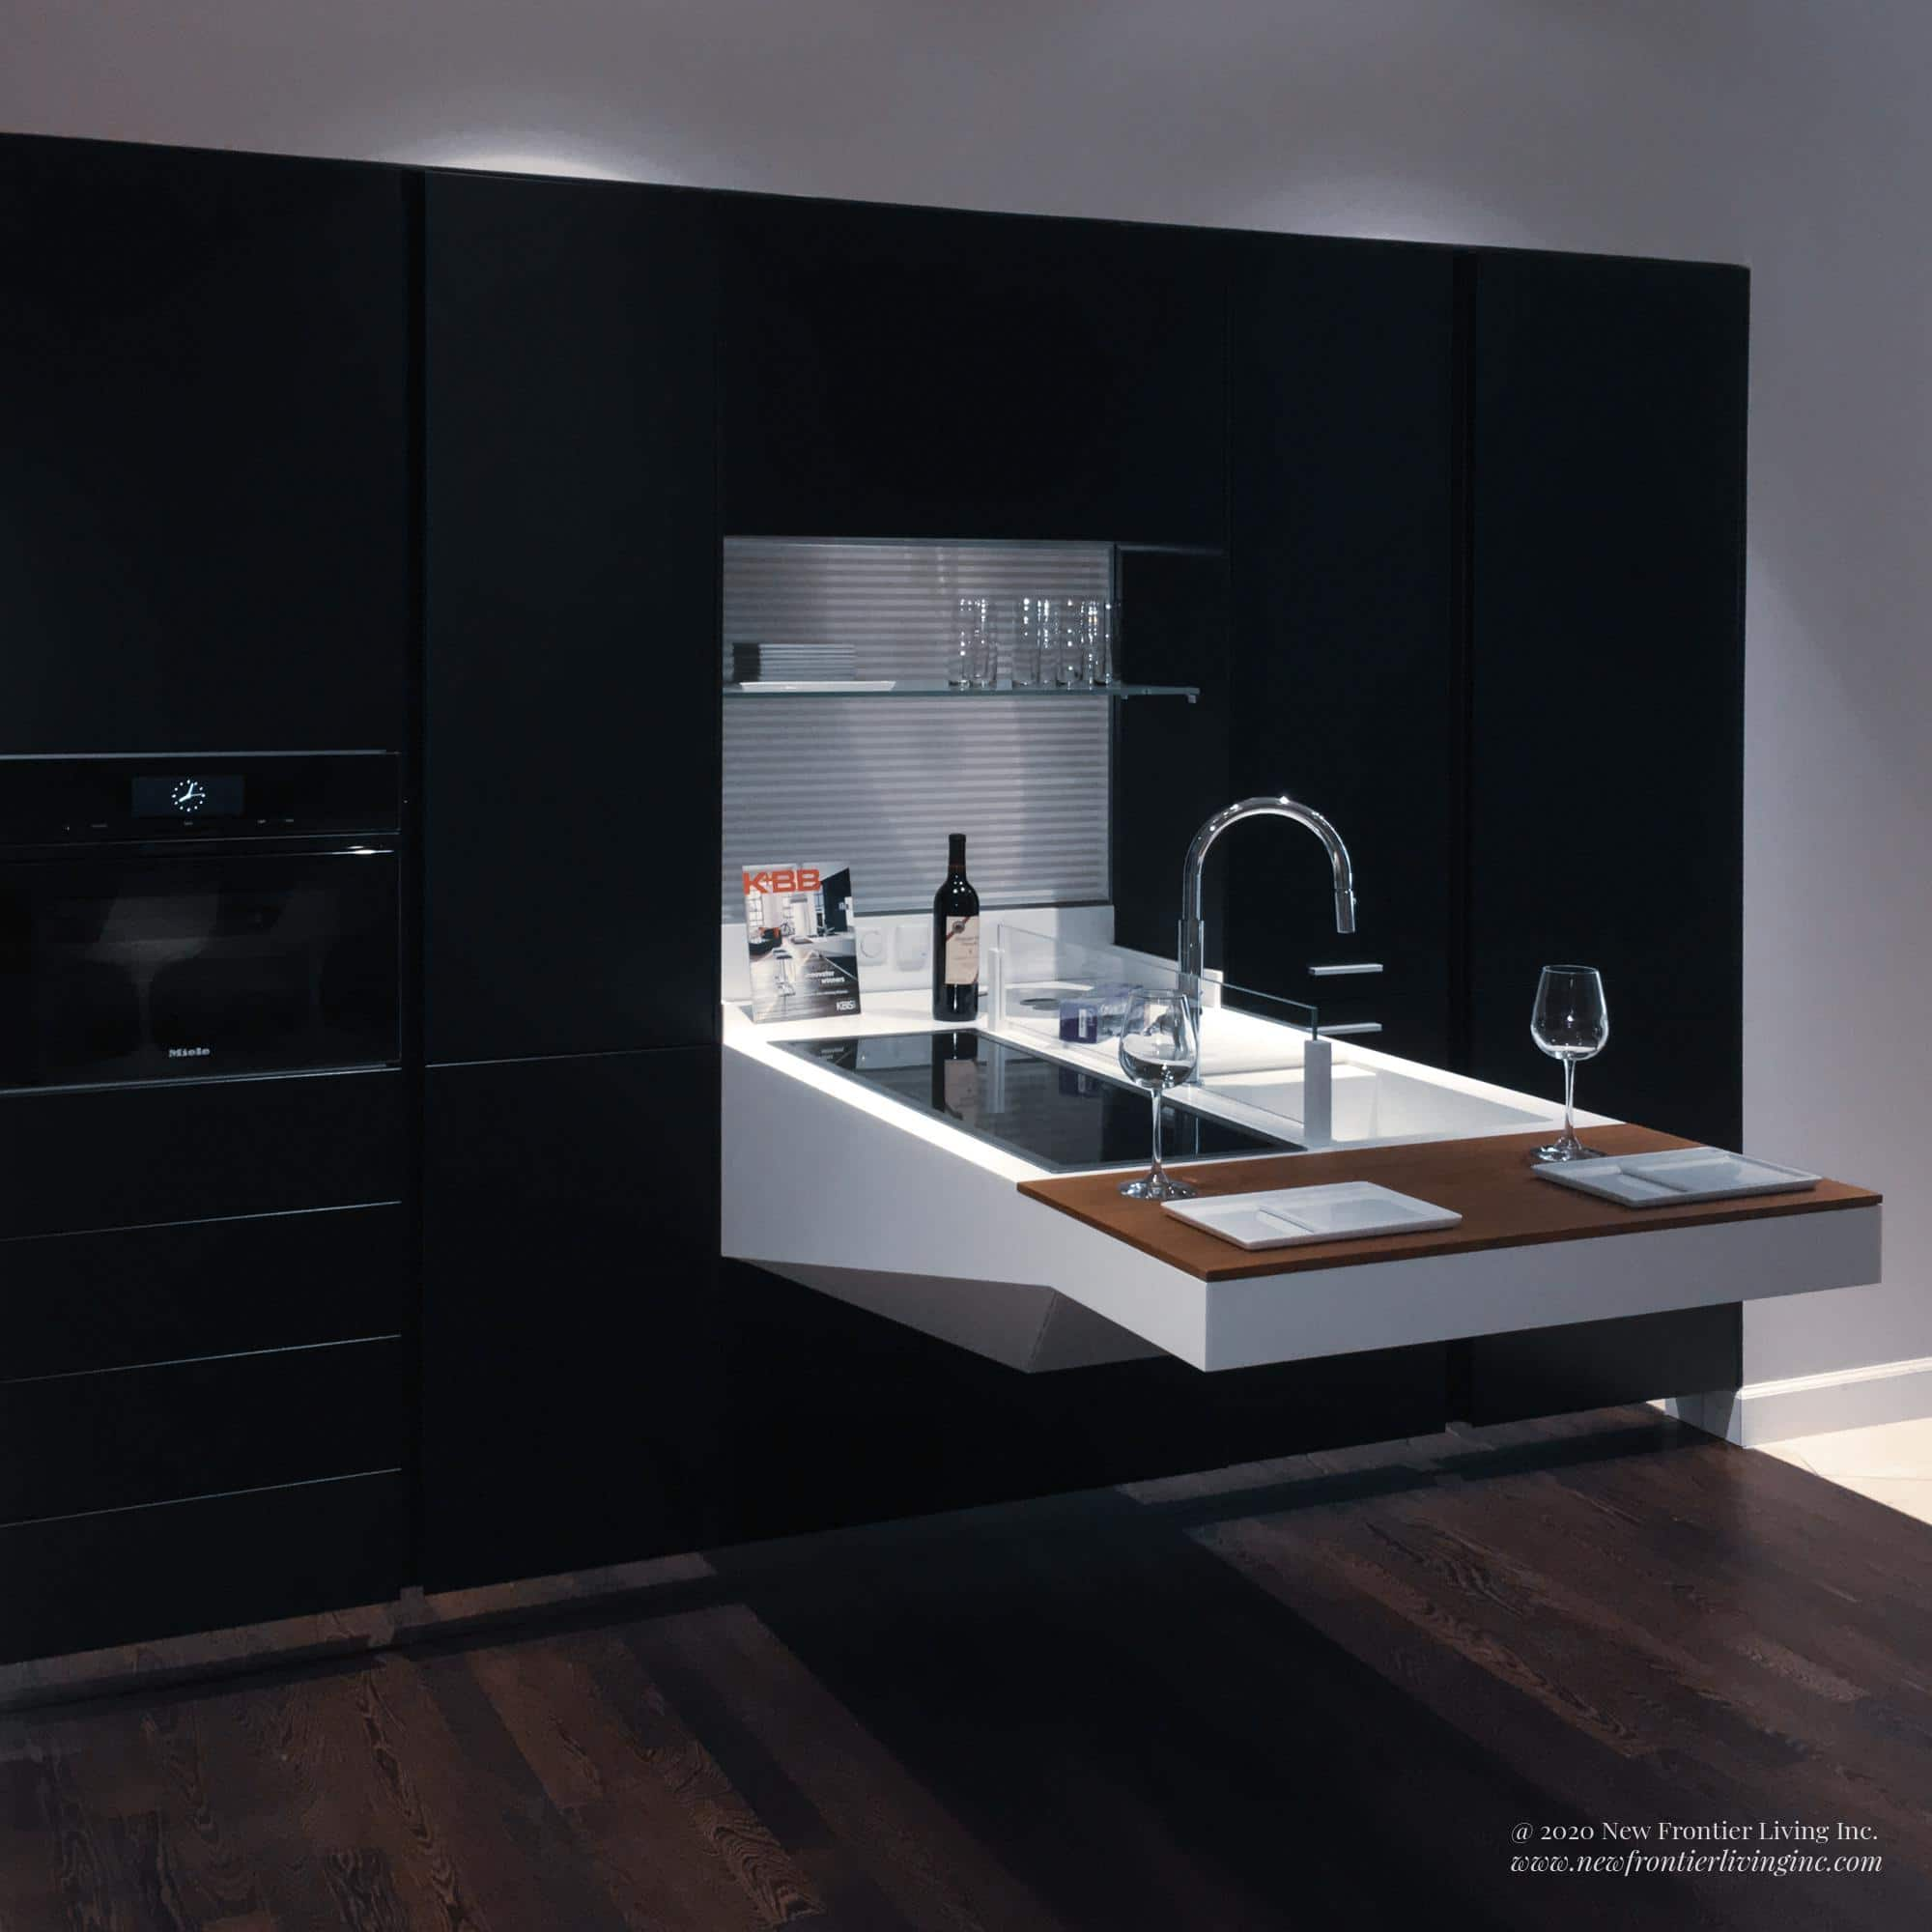 Black kitchen cabinetry and white foldable countertop